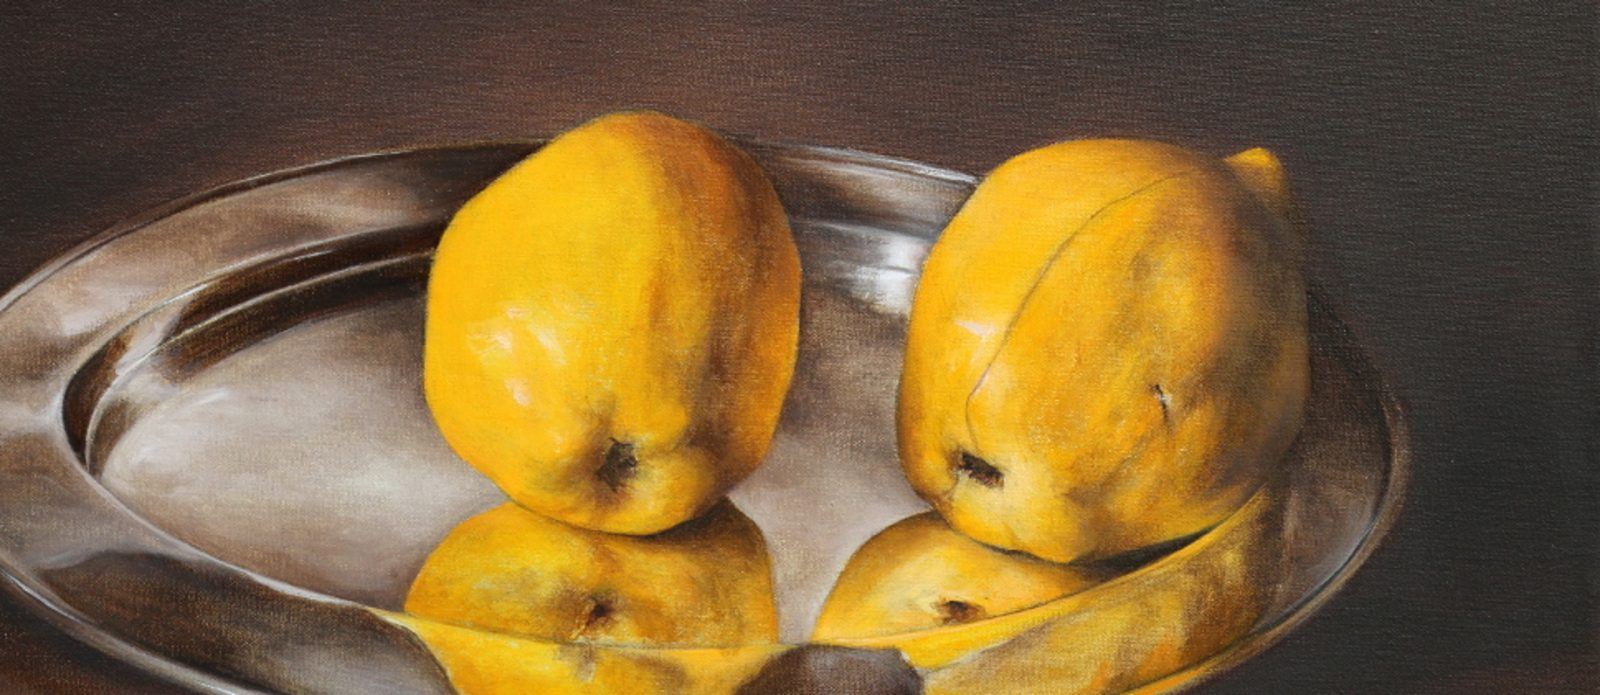 Two quince fruit on a silver platter by Tanja Moderscheim